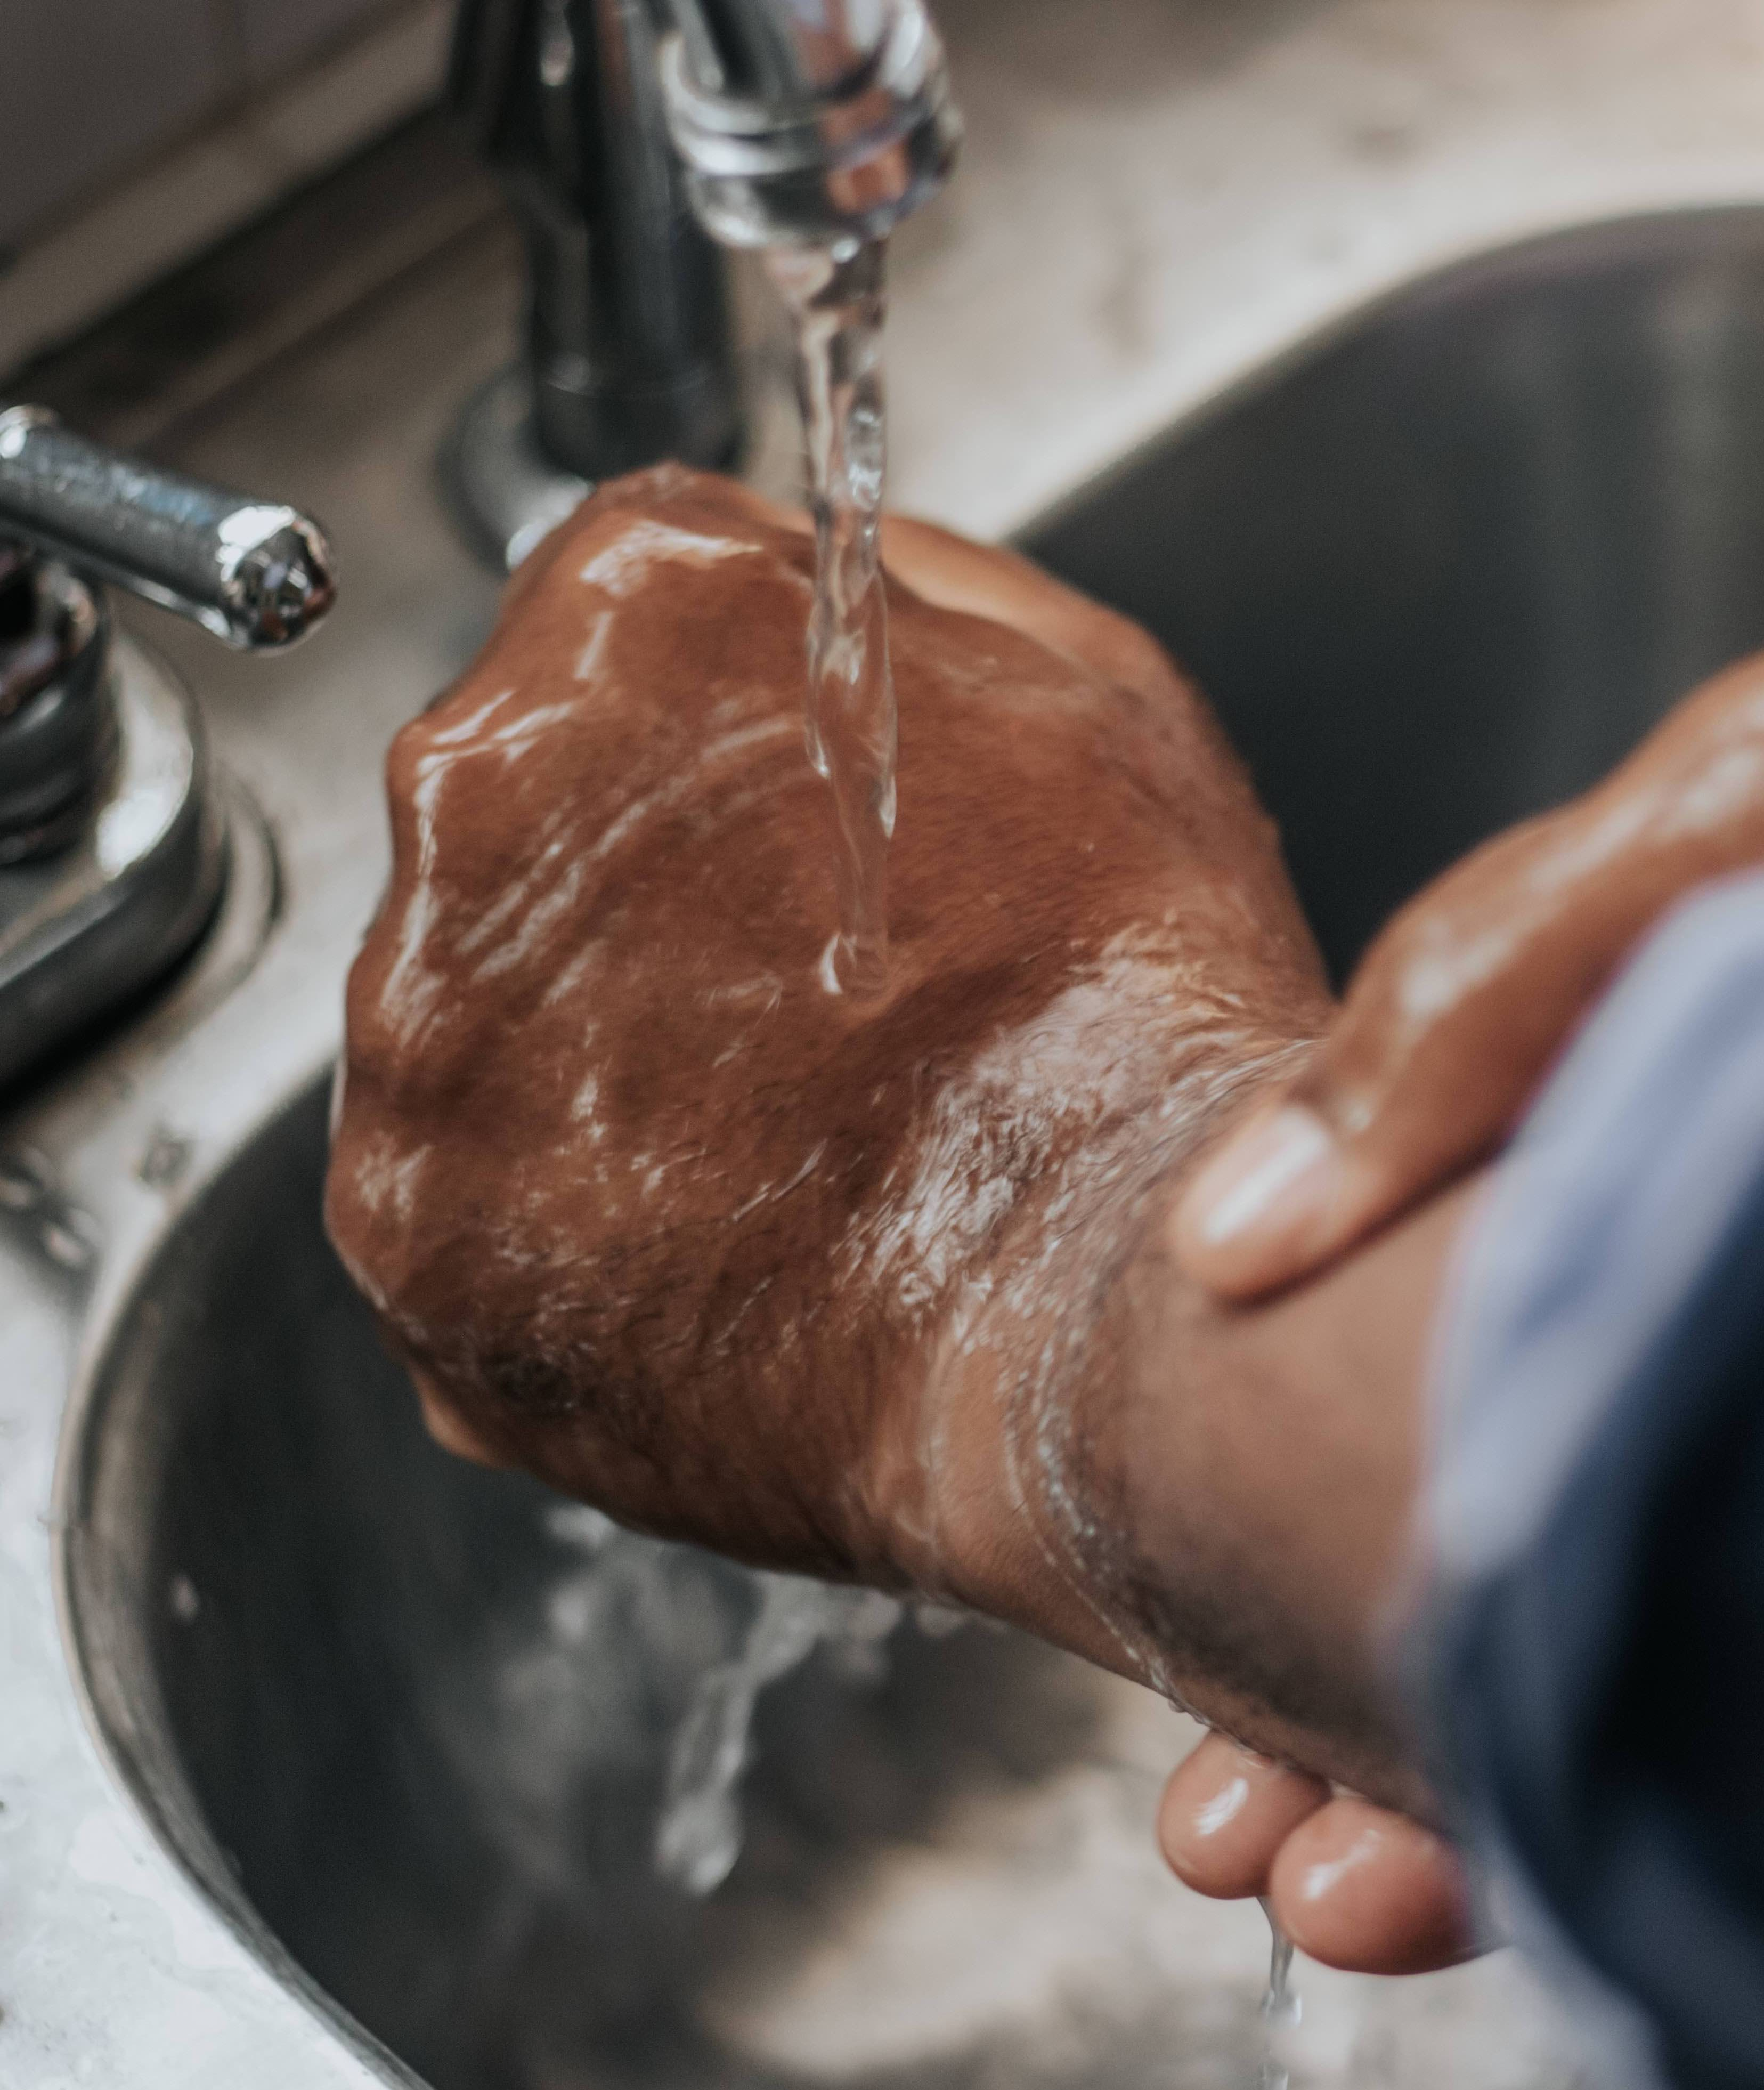 Step1: Wet and Add Soap Wet your hands with warm/cold water. Hot water is not needed - soap will get rid of the virus. Add soap to cover all over both your hands.